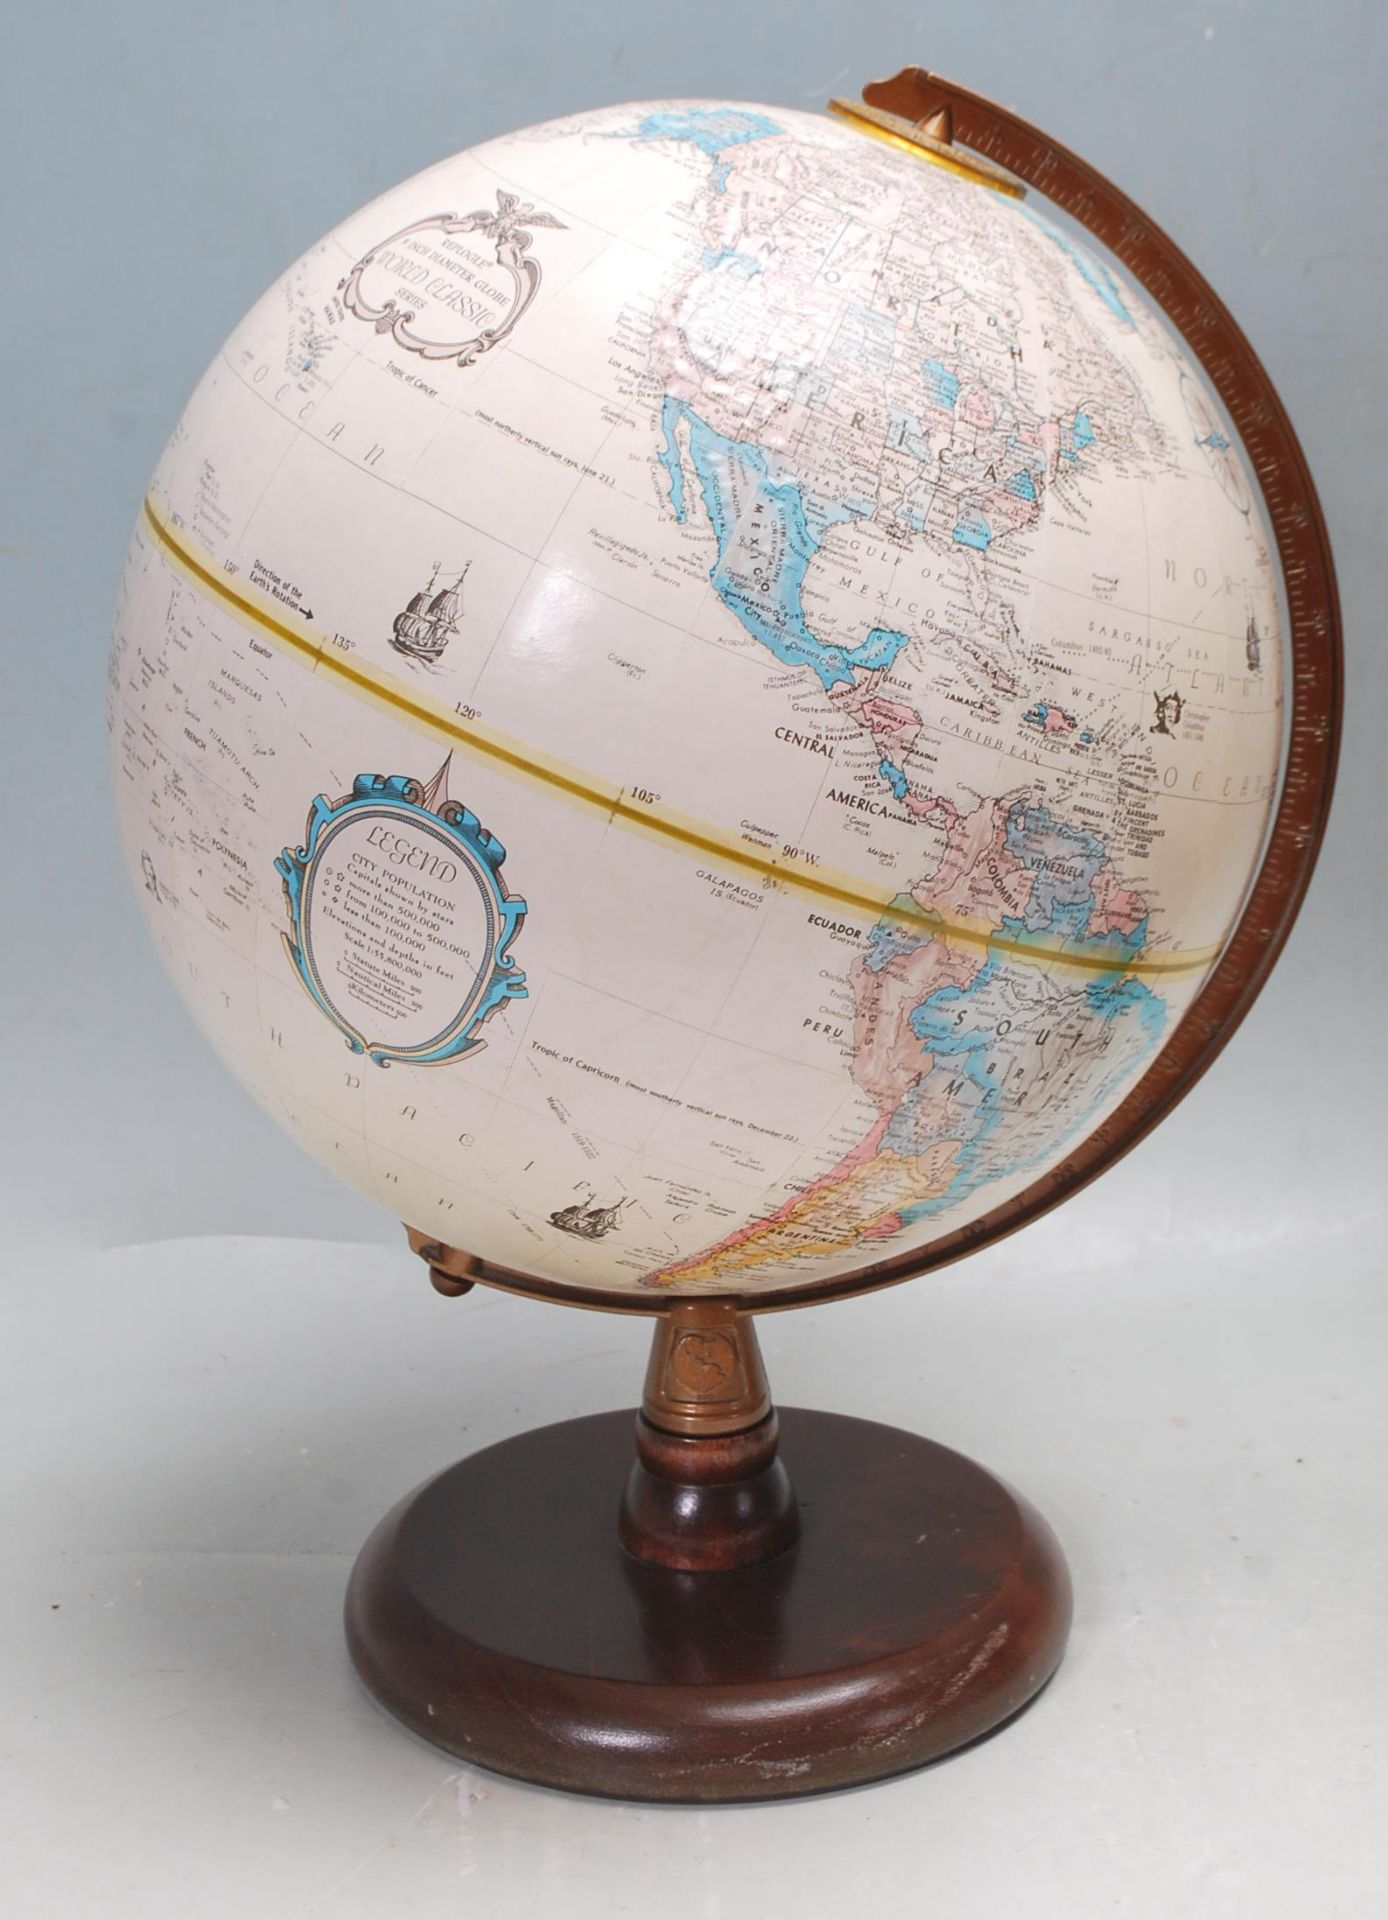 RETRO 20TH CENTURY WOODEN SAILING YACHT TABLE LAMP AND GLOBE - Image 2 of 6